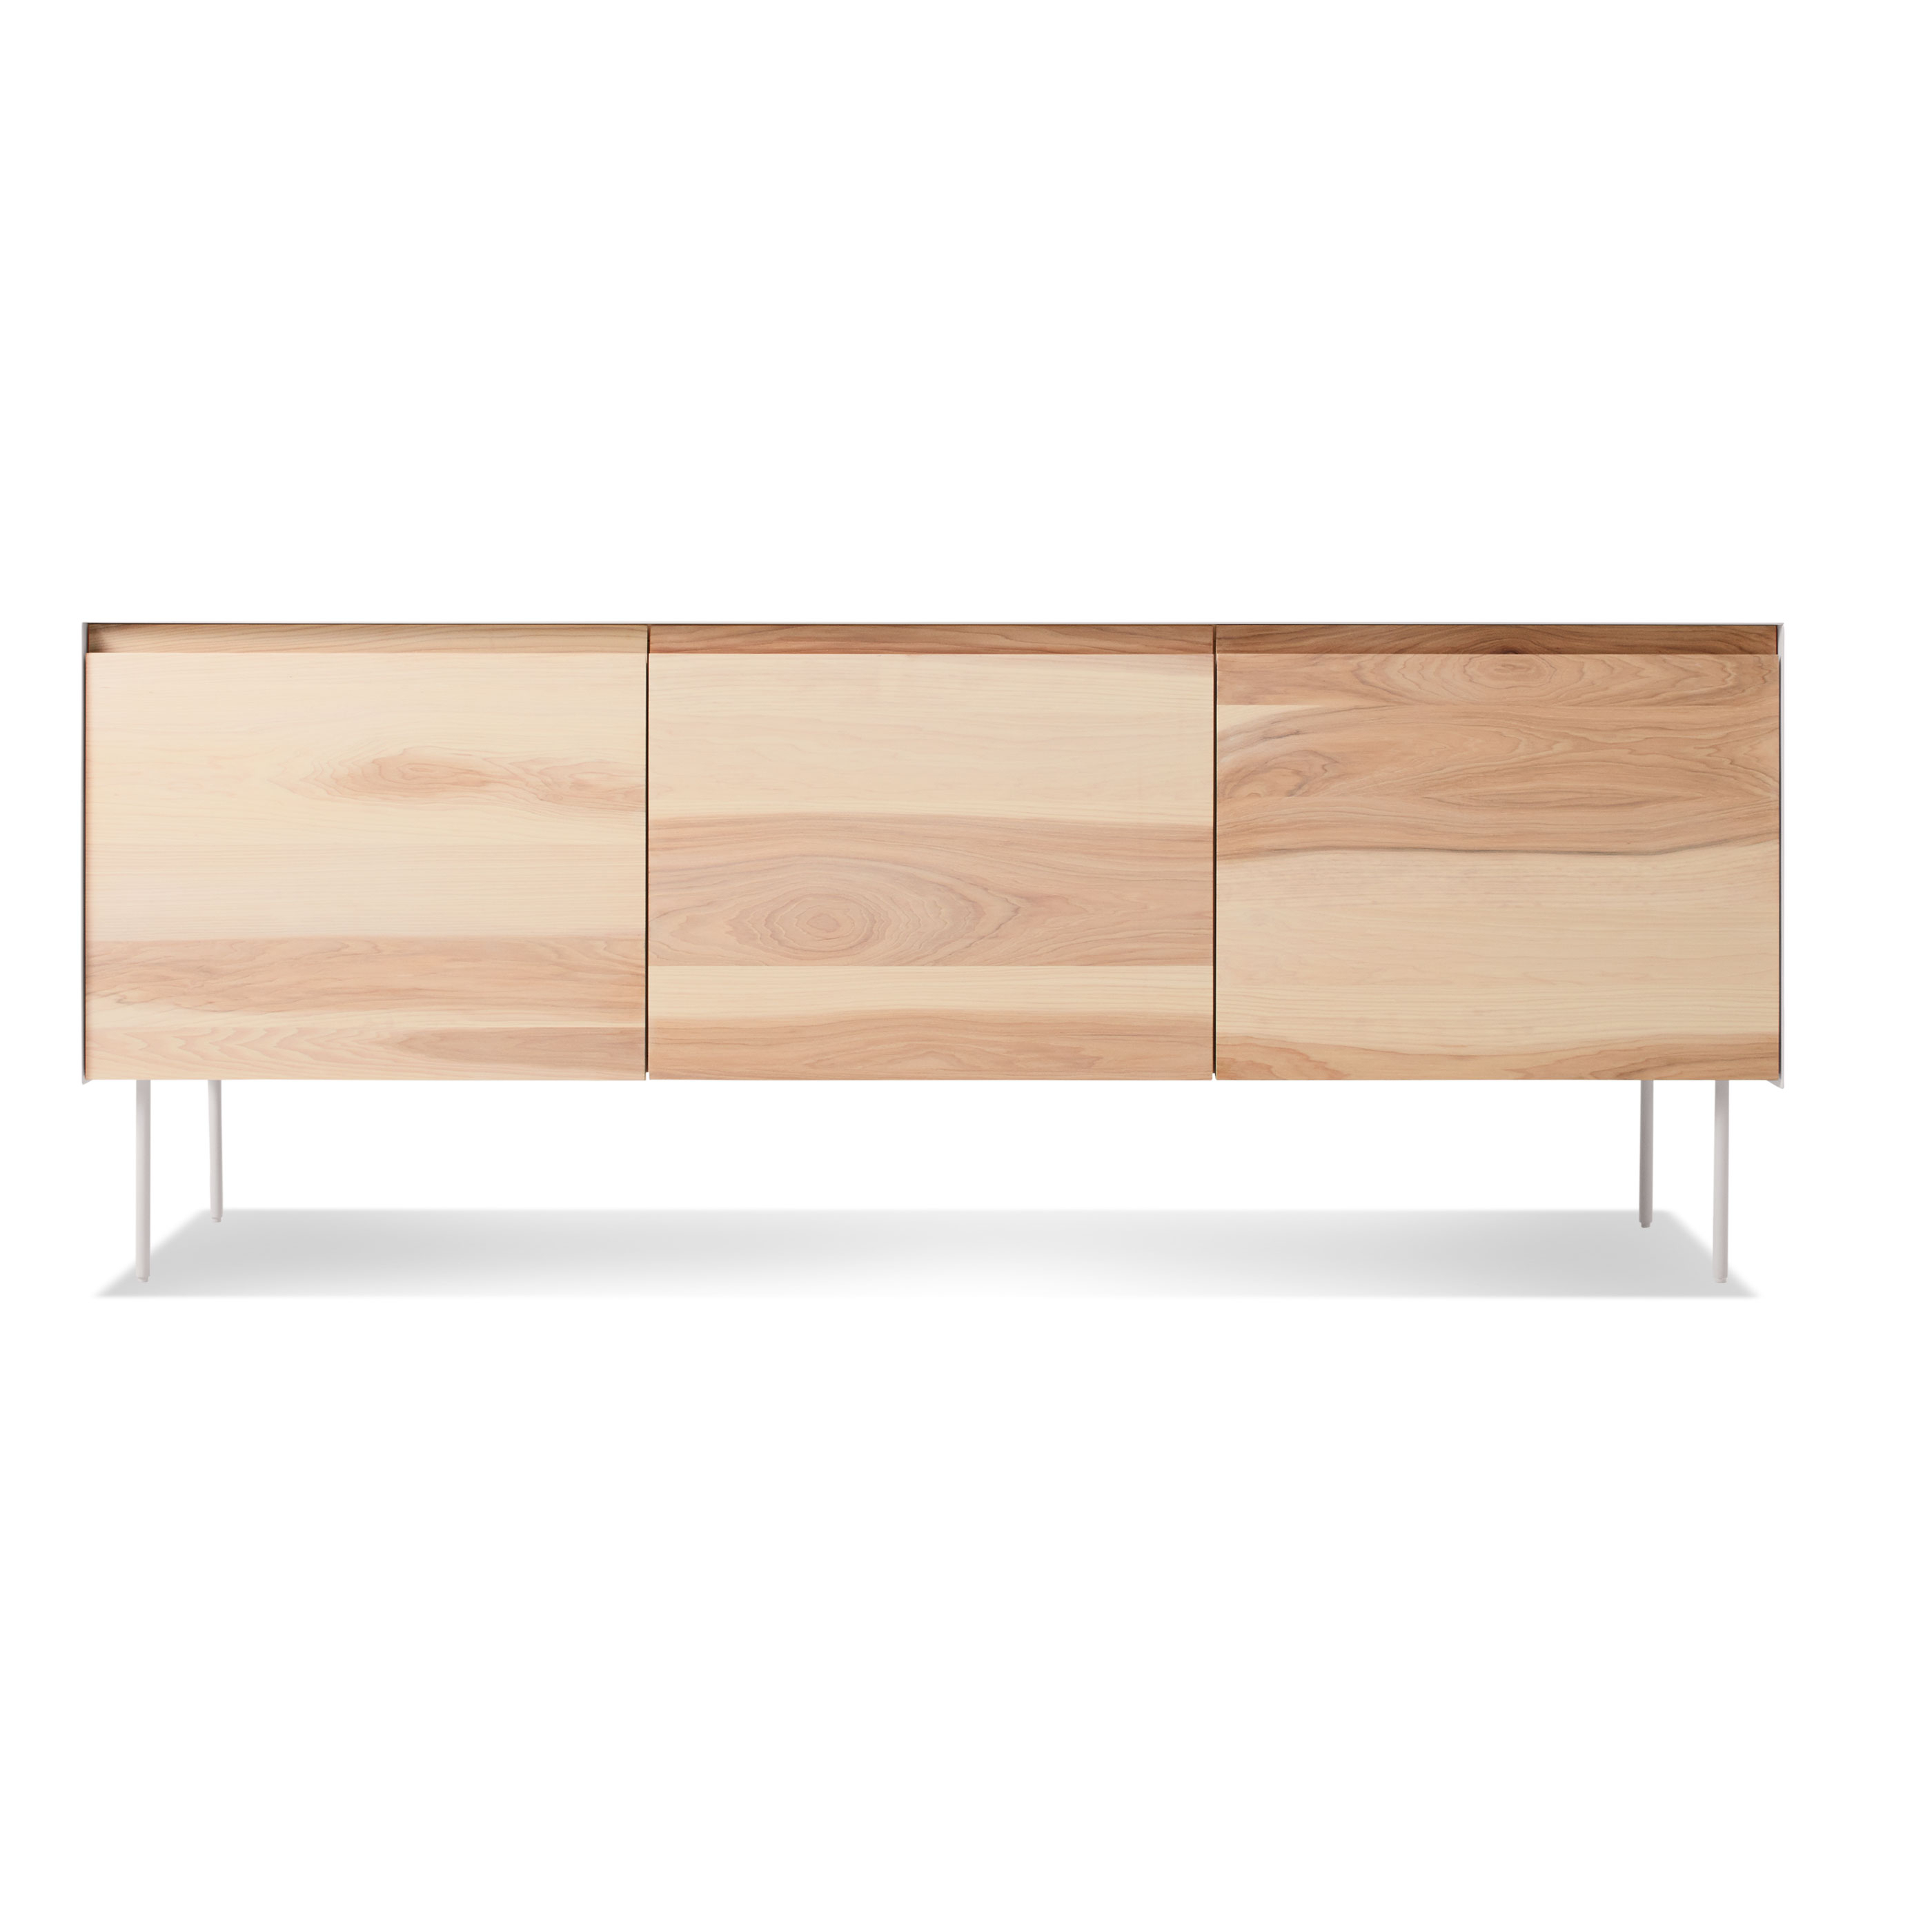 Preferred Candace Door Credenzas Pertaining To Designer Buffet Tables – Modern Buffet Tables (Gallery 18 of 20)